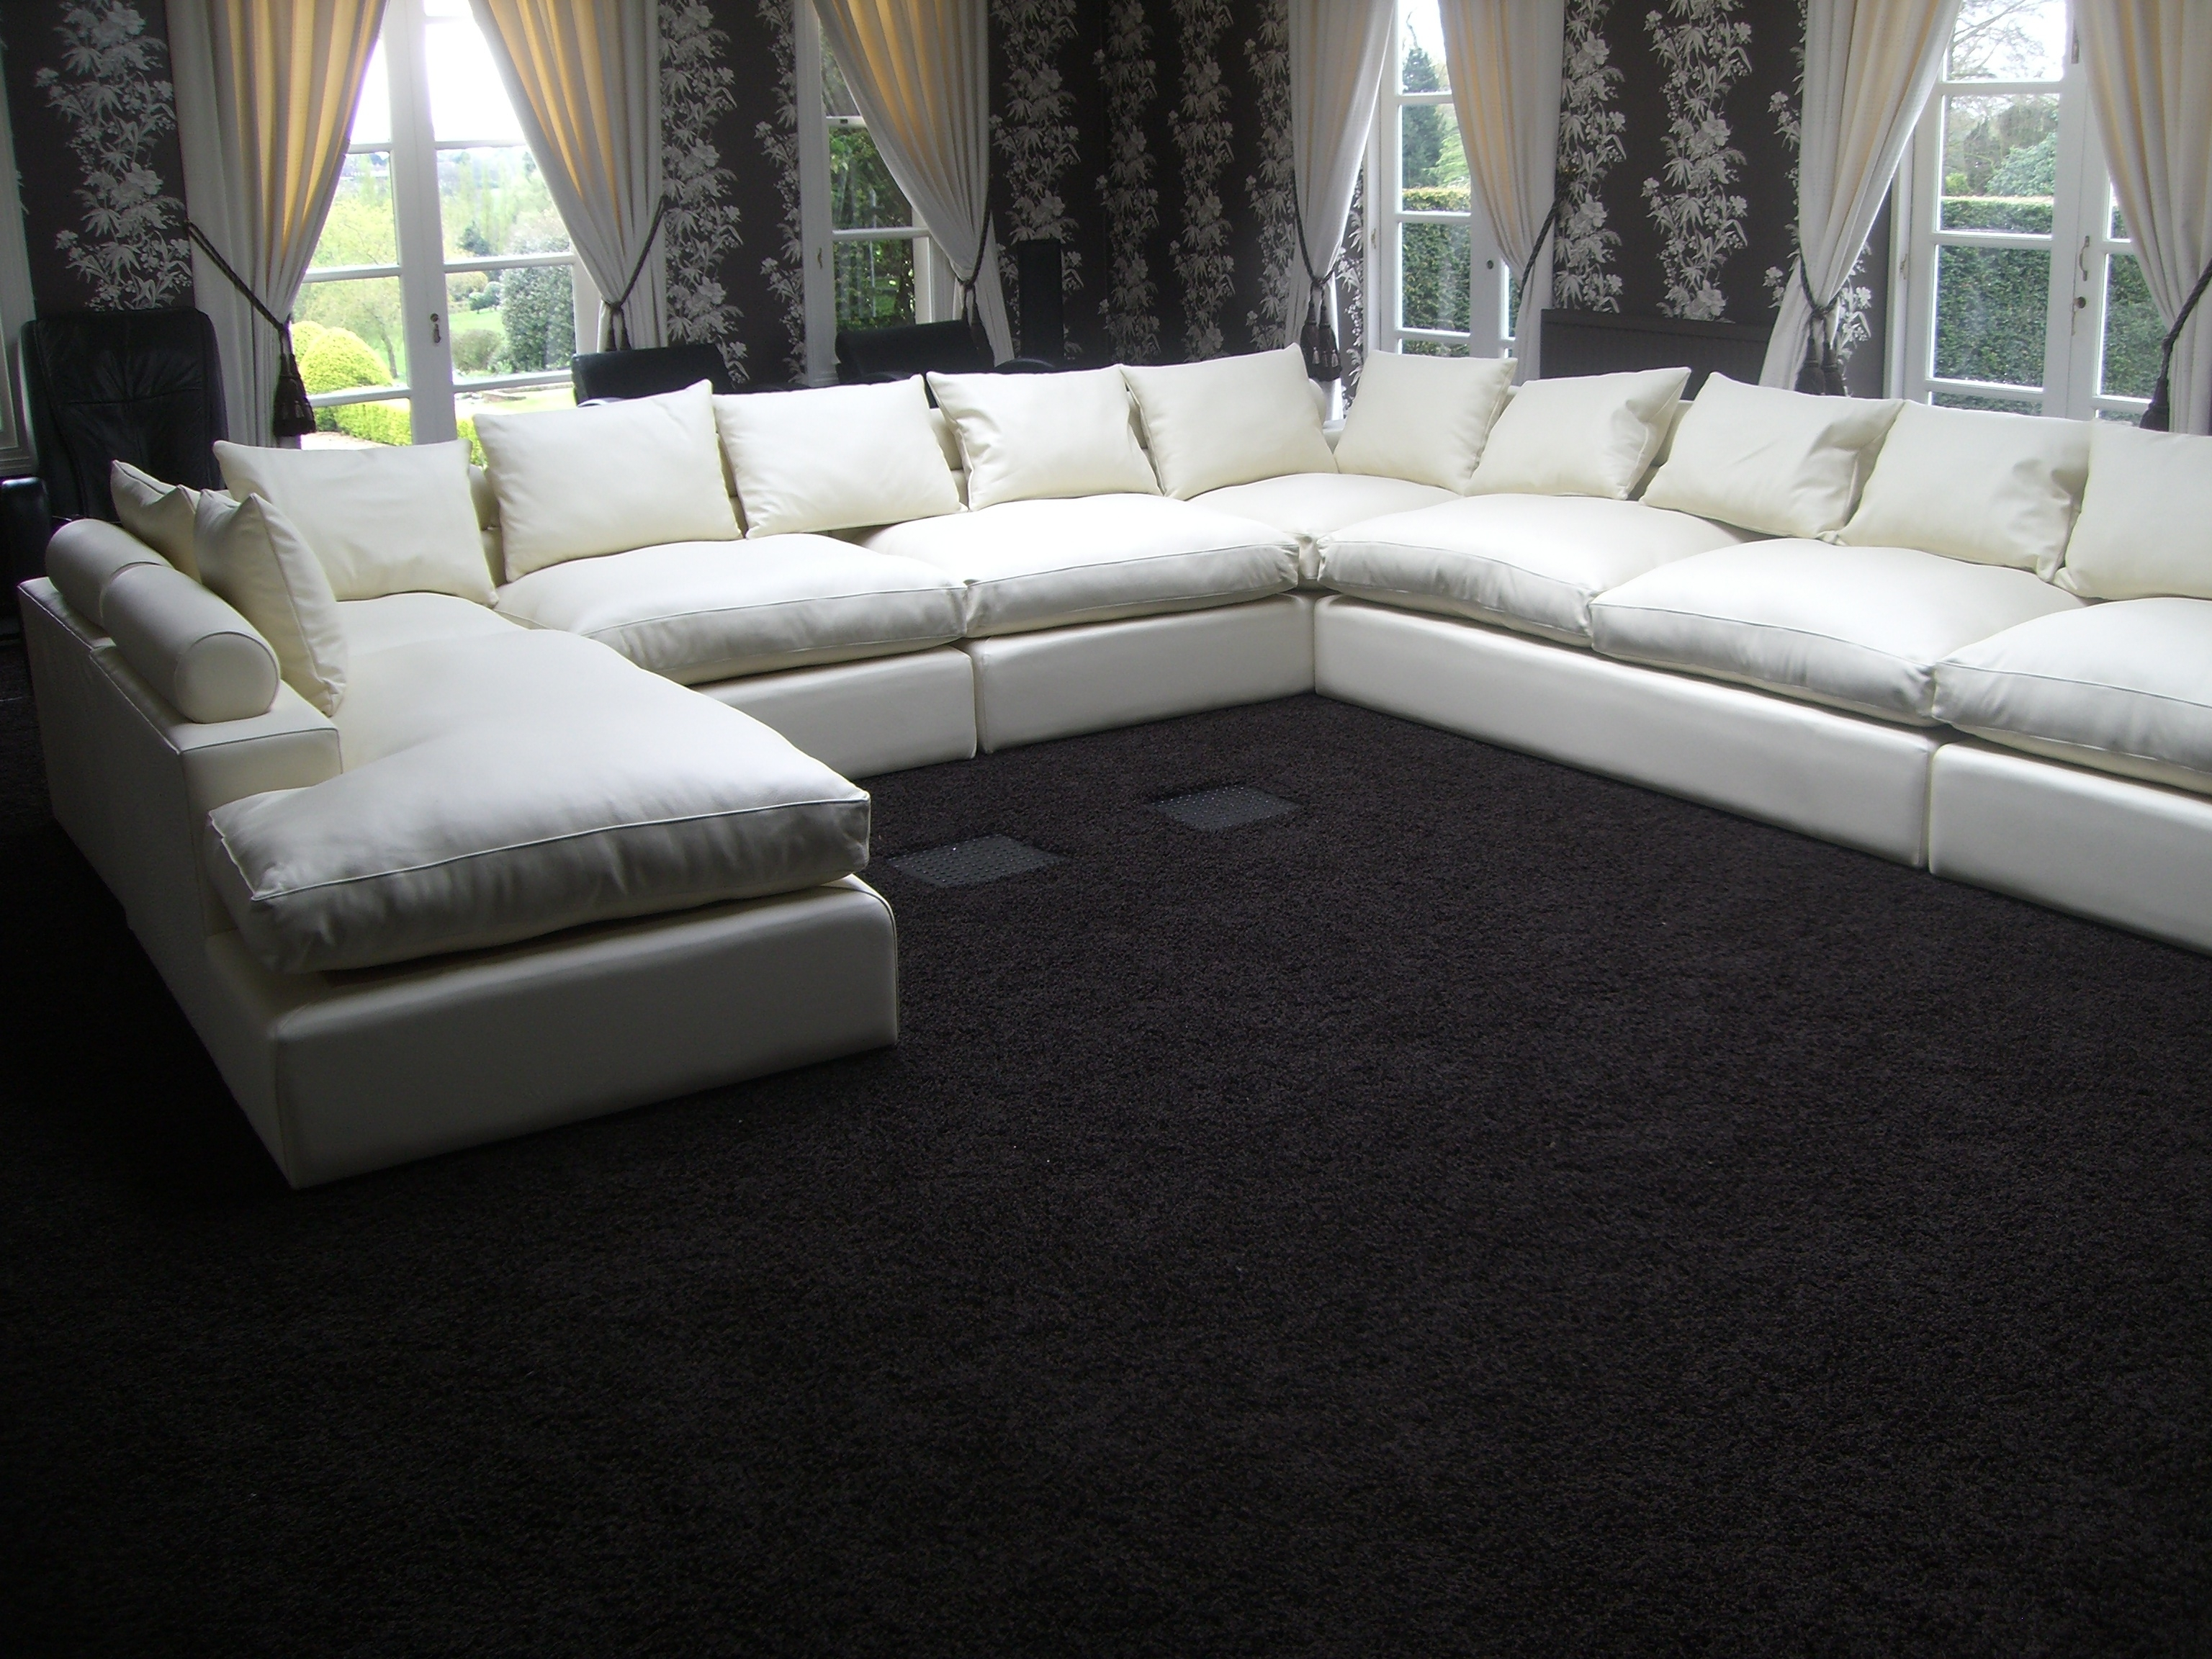 Large U Shaped Sofa – Fjellkjeden Inside Trendy U Shaped Sectionals (View 6 of 20)